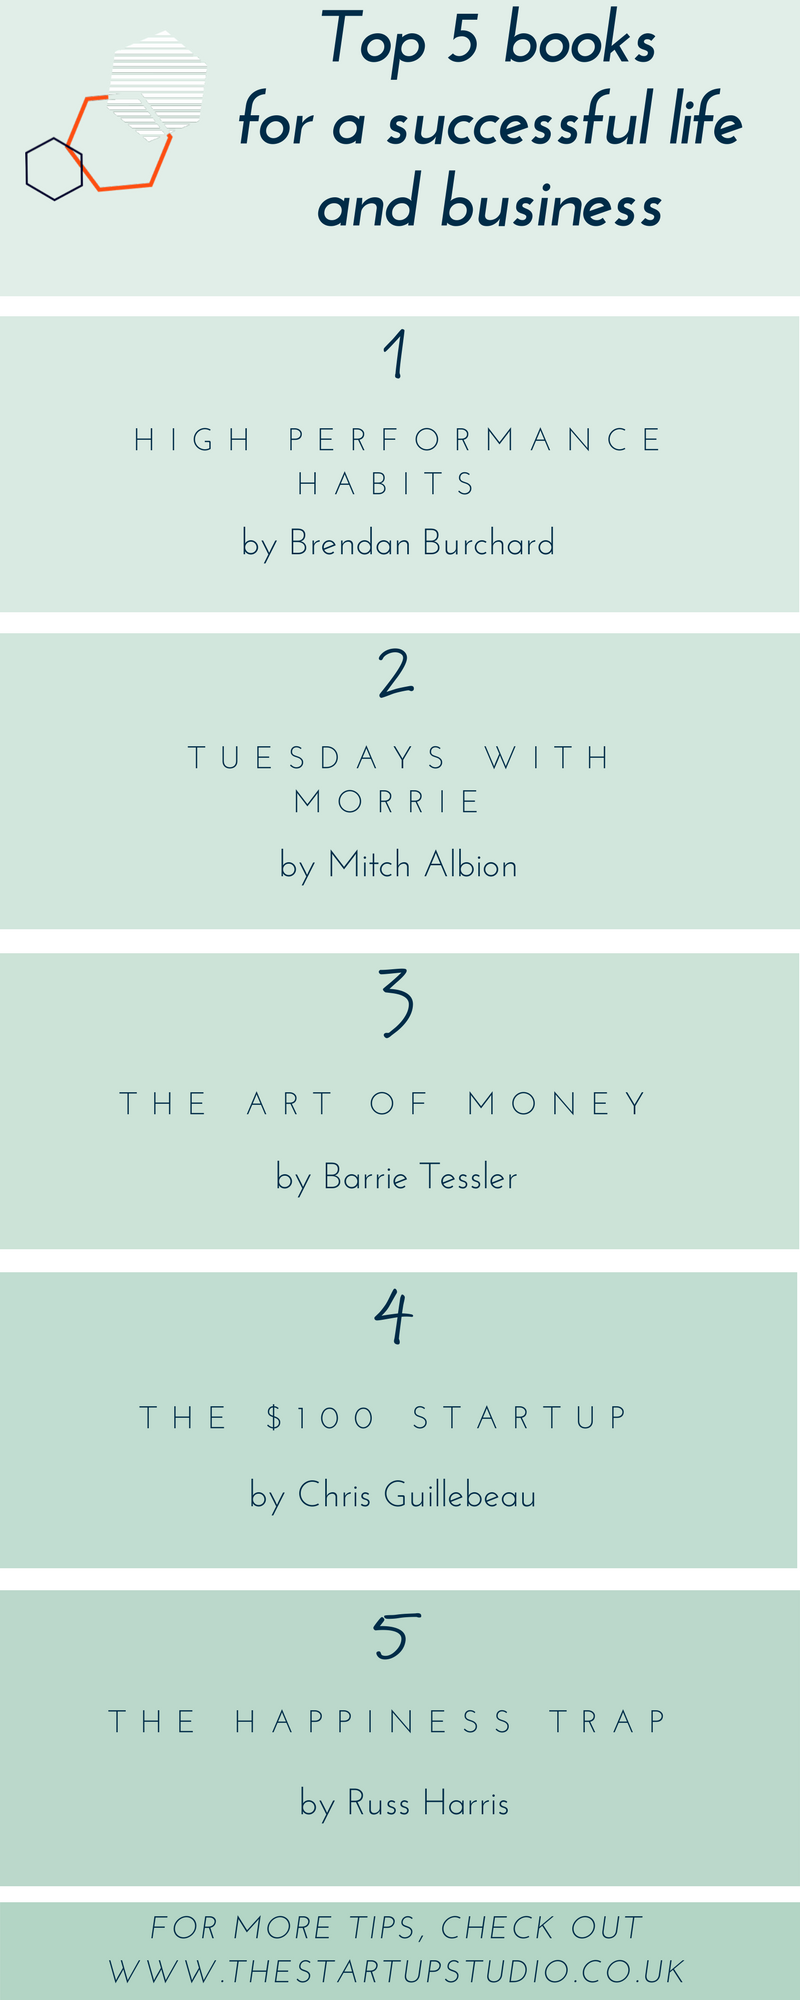 5 must read books for life and business.png